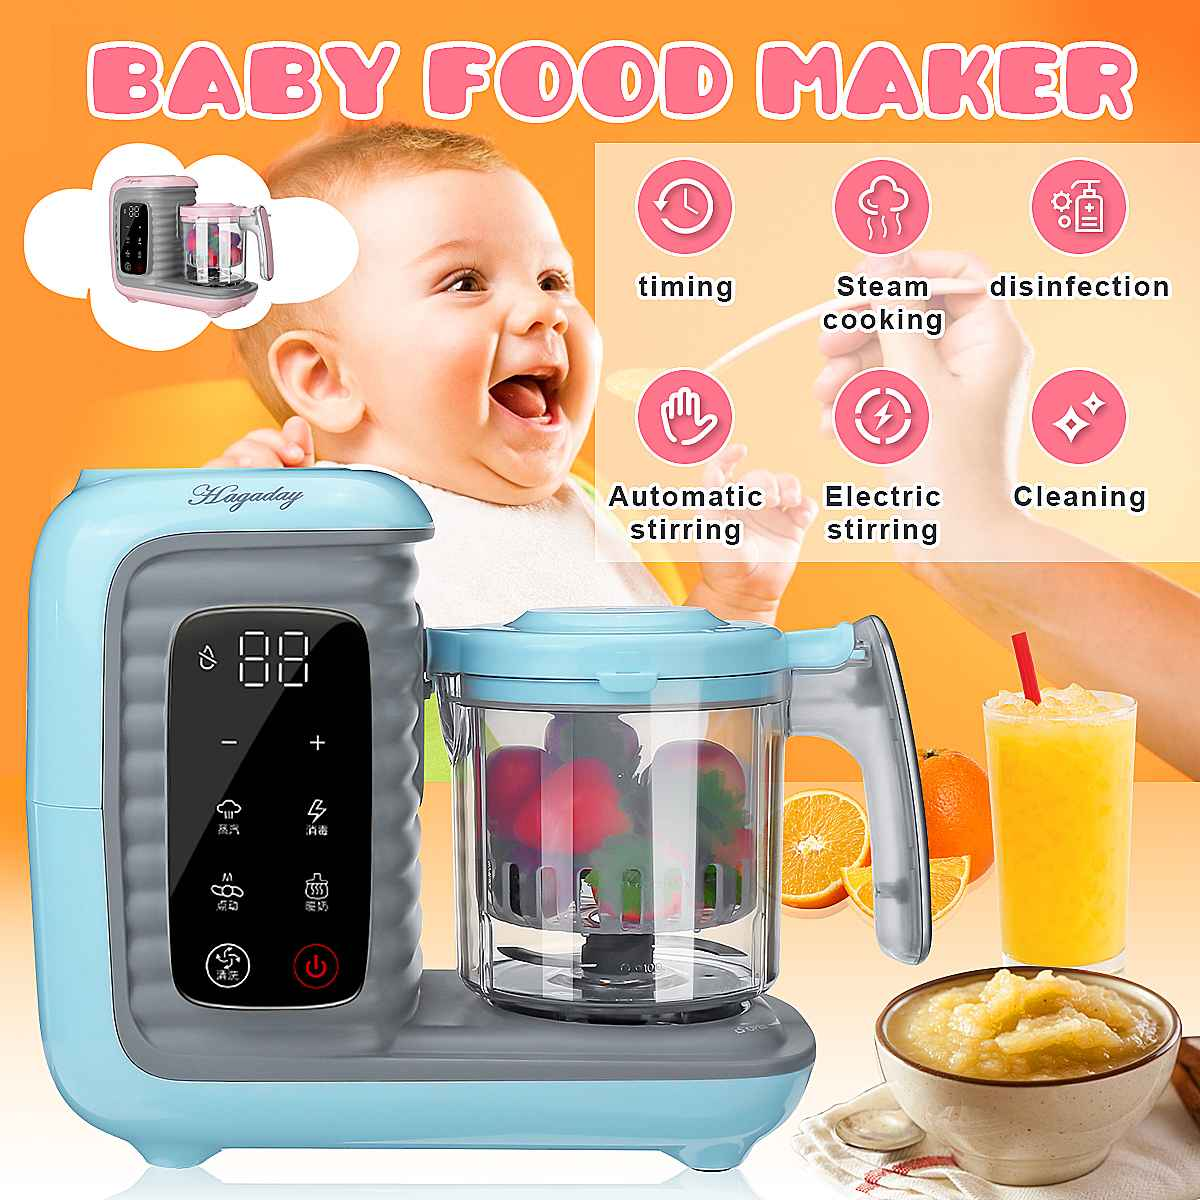 <font><b>5</b></font> in 1 Baby Feeding Food Maker New Children Multi-function Baby Food Processor Smart Infant Milk Warm Baby Food Cooking Blenders image